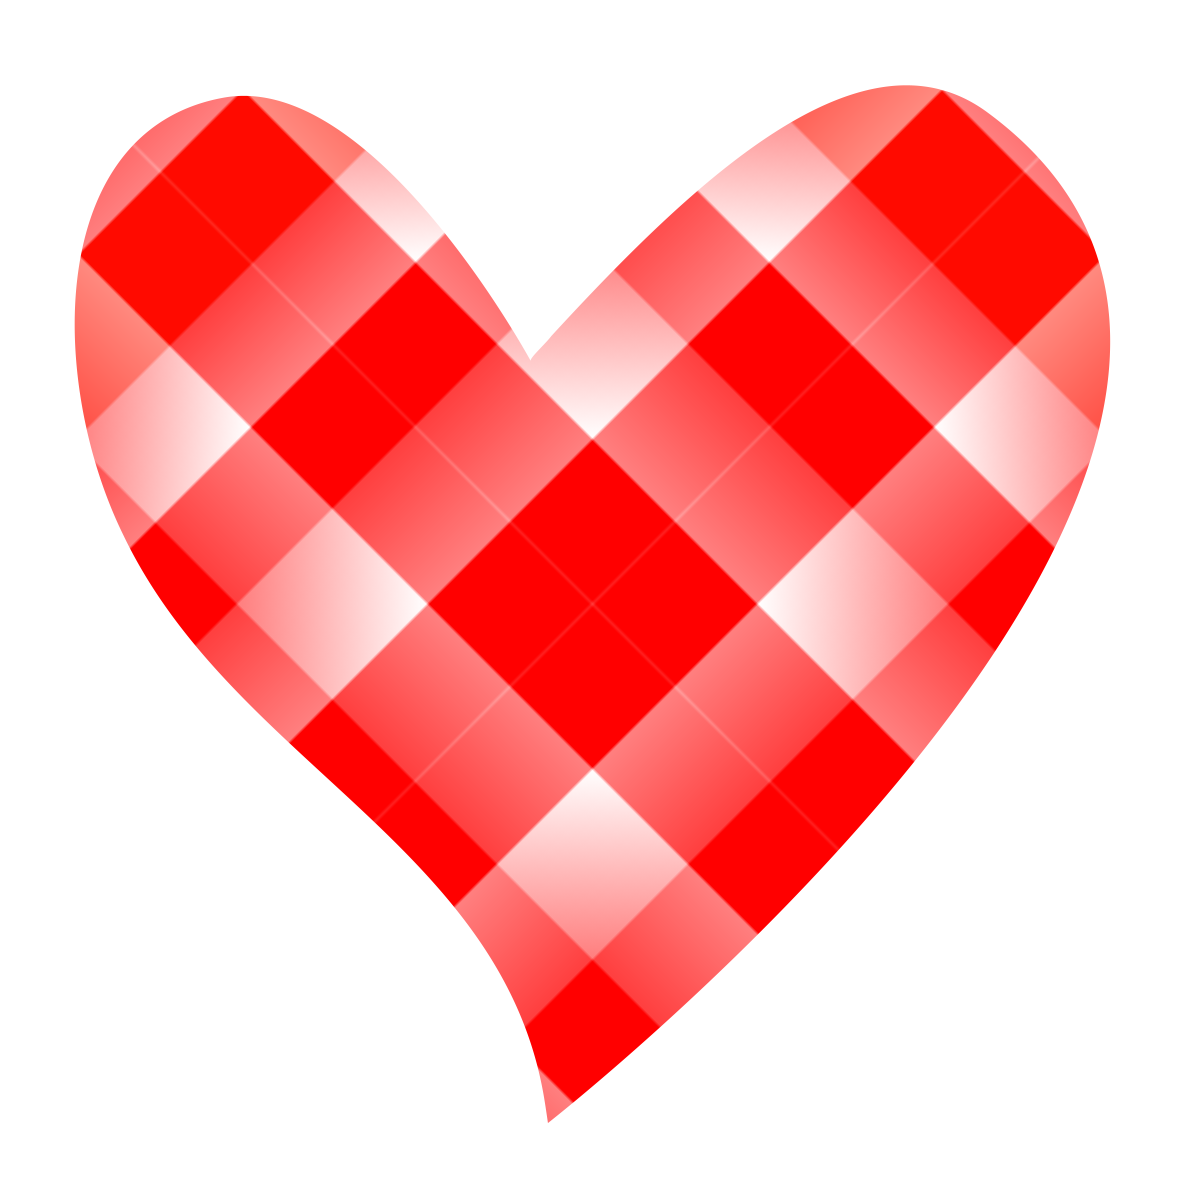 Heart Shaped Cookie Clipart.